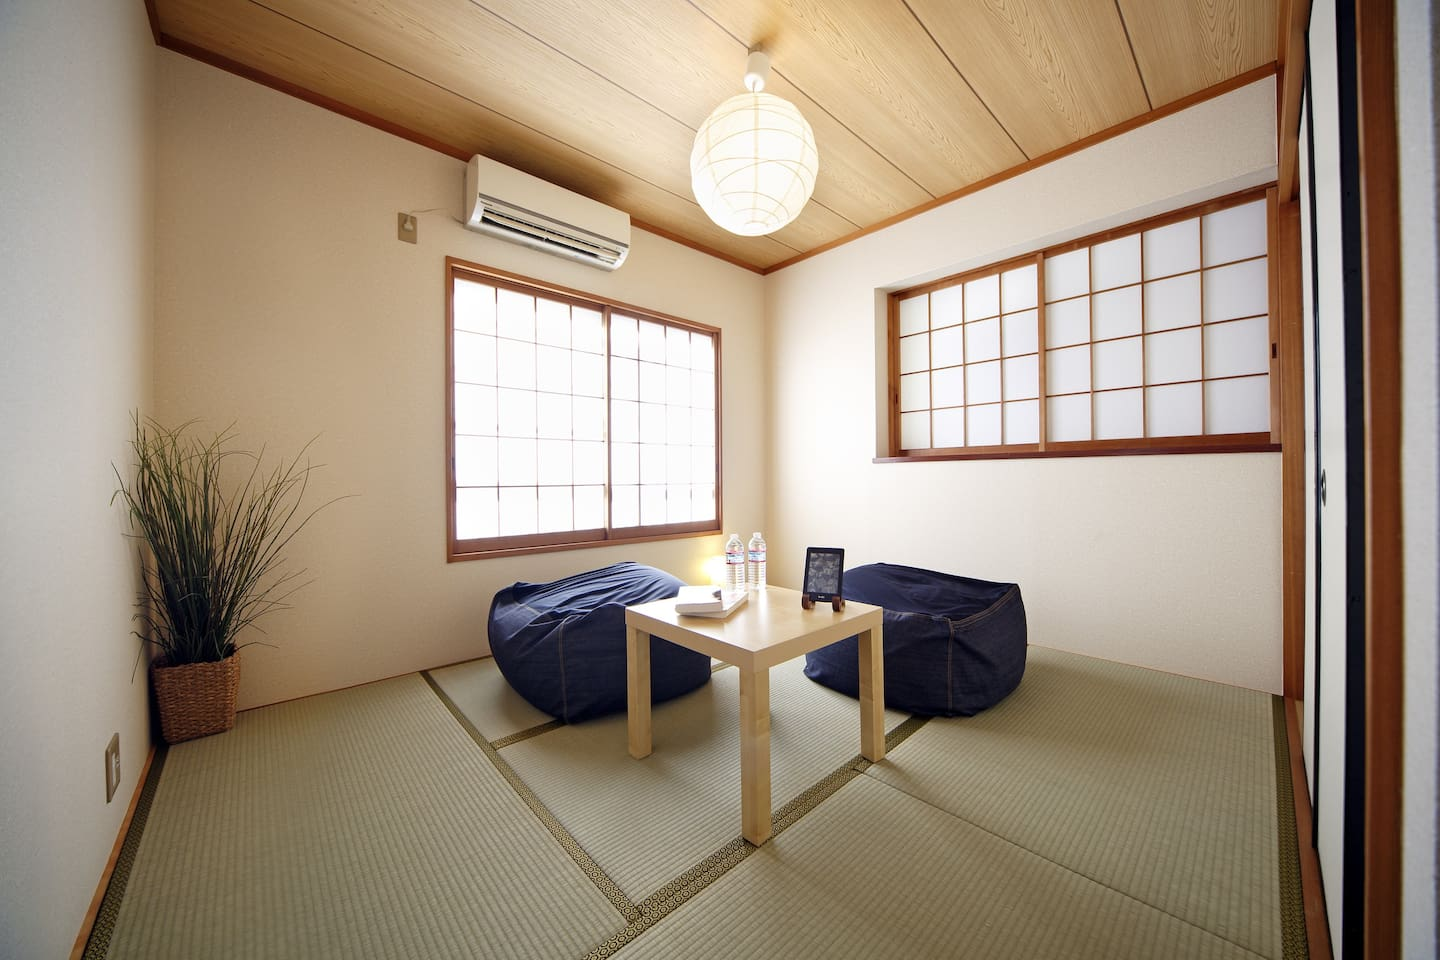 Traditional Japanese Bed-Room with Pocket Coil Mattress